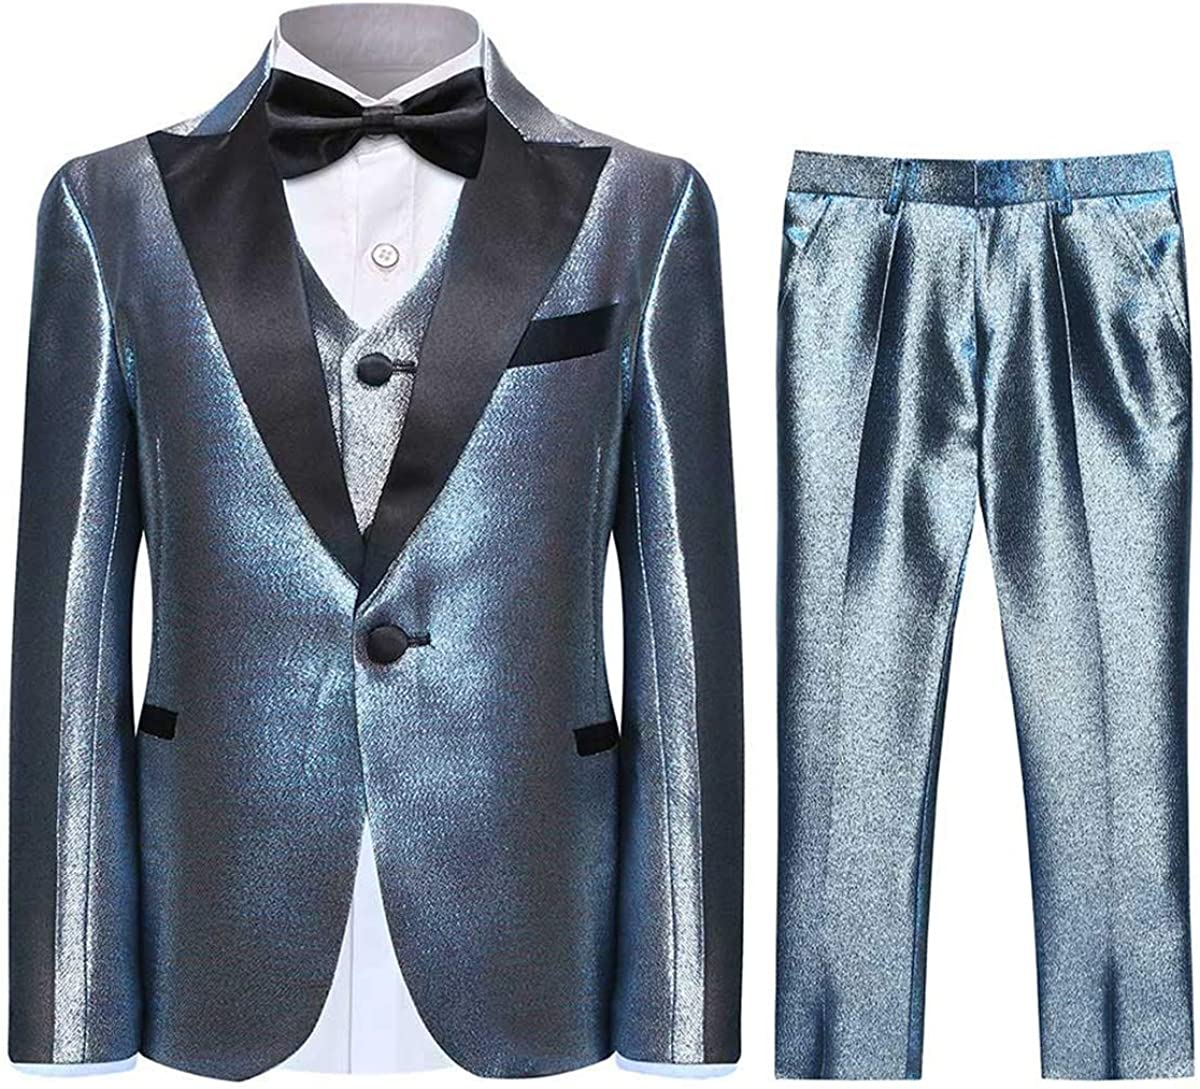 SWOTGdoby Boys Shiny Suits Slim Fit Mer Pieces Set trend Now free shipping rank 3 Fading Suit